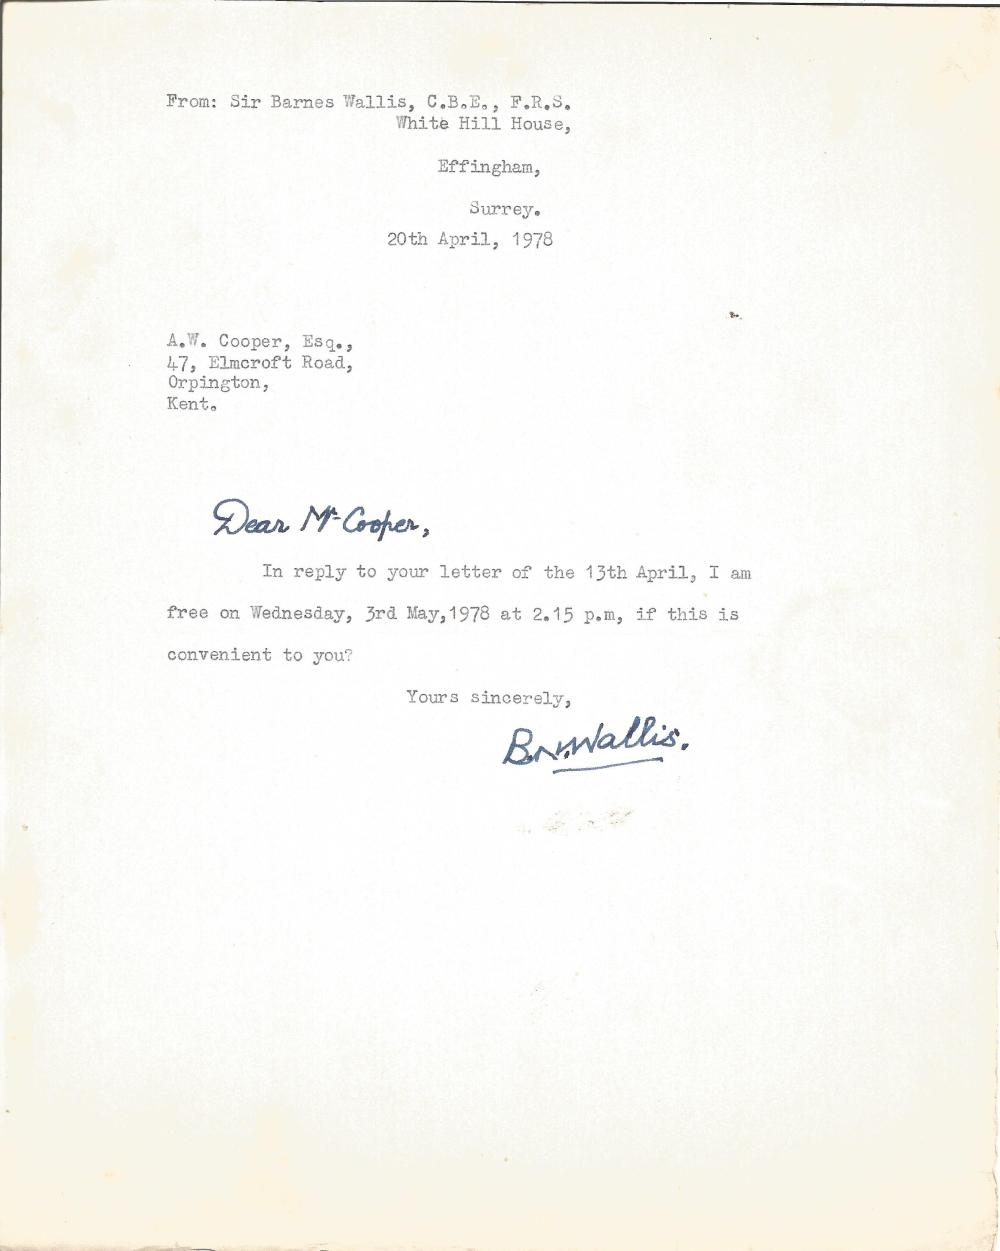 Sir Barnes Wallis TLS addressed to Mr Cooper arranging to meet letter dated 20th April 1978. Good